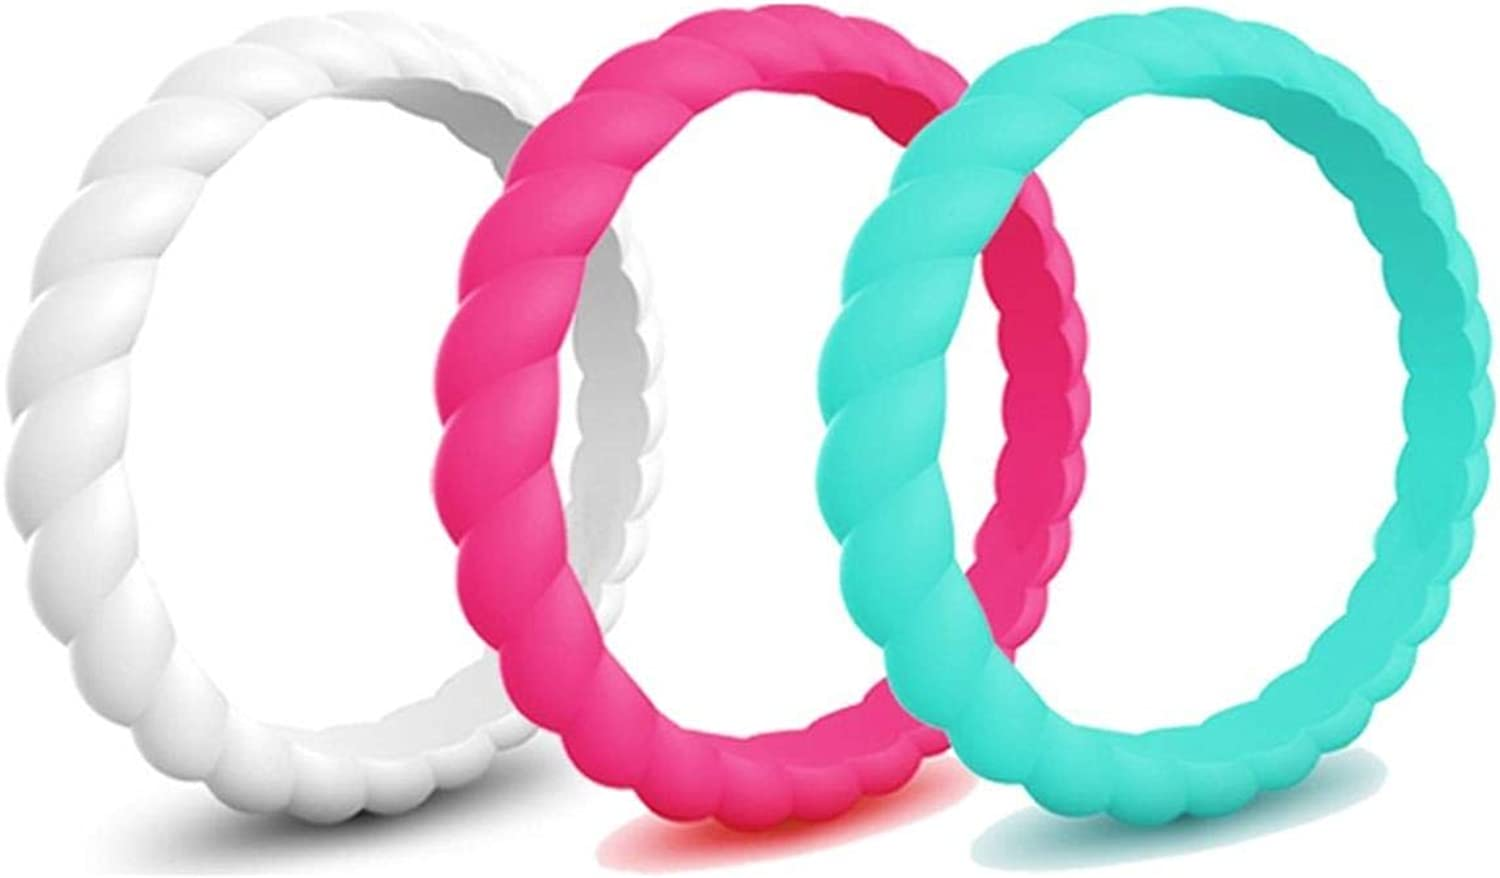 Caiyao 3 Pcs Silicone Wedding Ring Thin Rubber Wedding Bands Stackable Braided Ring Fashion Colorful Athletic Ring Sets Comfortable Fit Skin Safe Affordable Braided Silicone Wedding Bands for Women